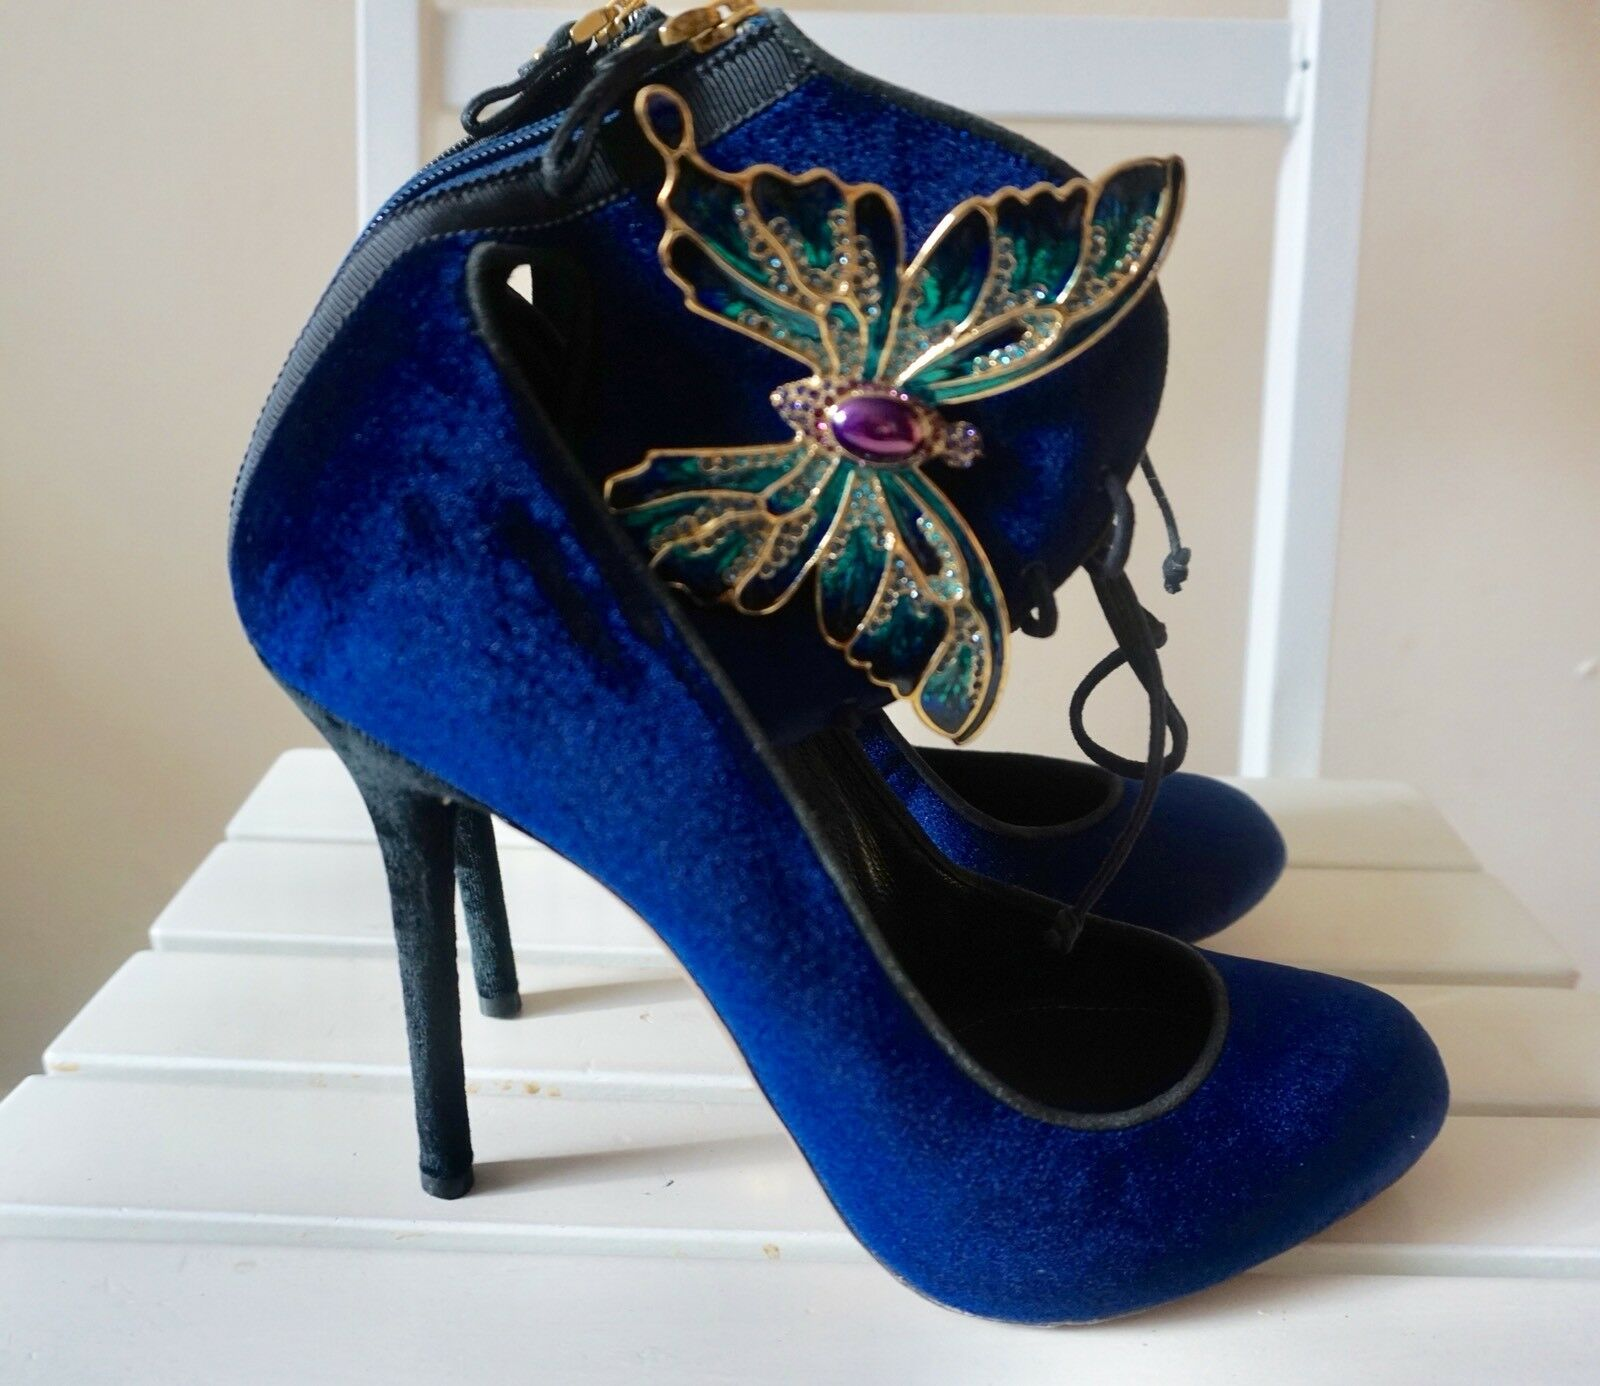 2K SERGIO ROSSI Blau Velvet Velvet Velvet Heels With Butterfly Ornament Größe IT 40 US 9 a7f556